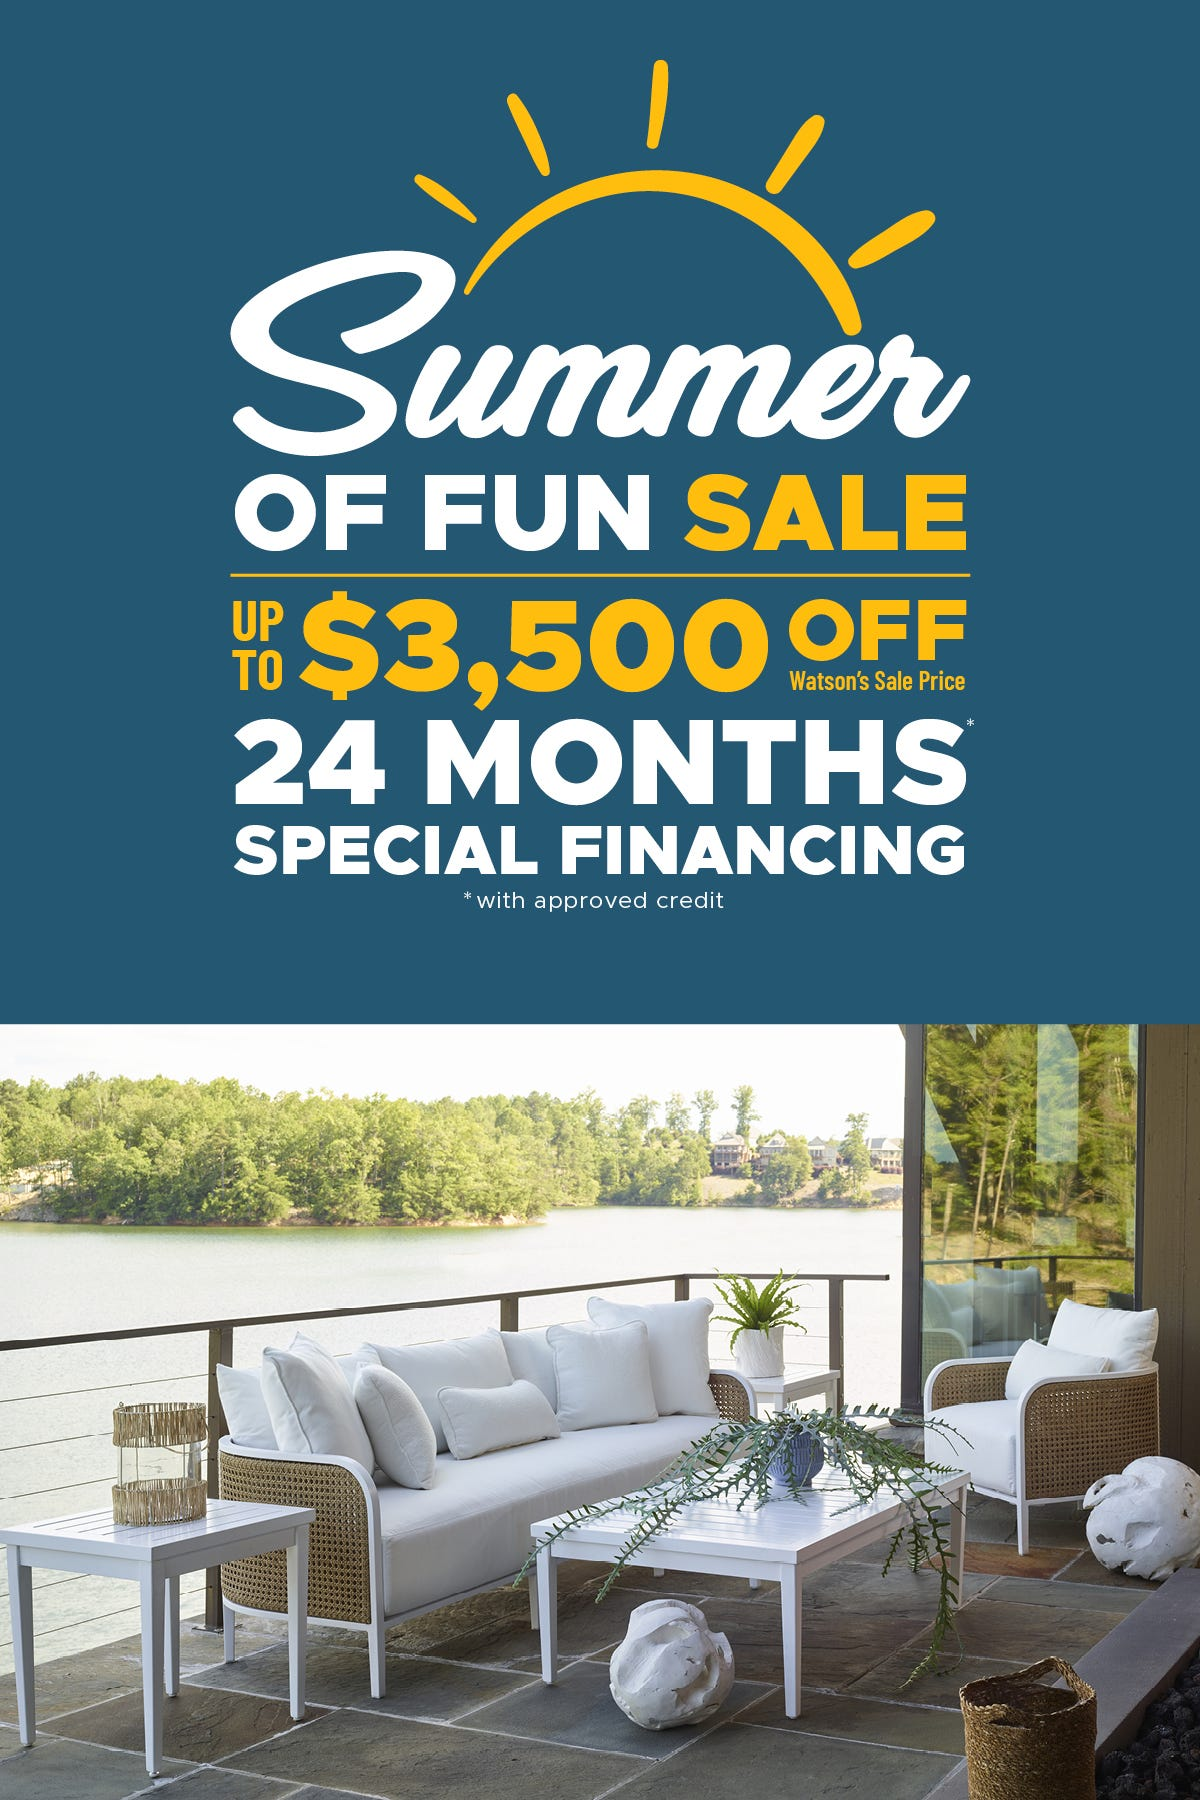 Summer of Fun Sale. Up to $3,500 off Watson's Sale Price. 24 months special financing. With approved credit. Shop now.